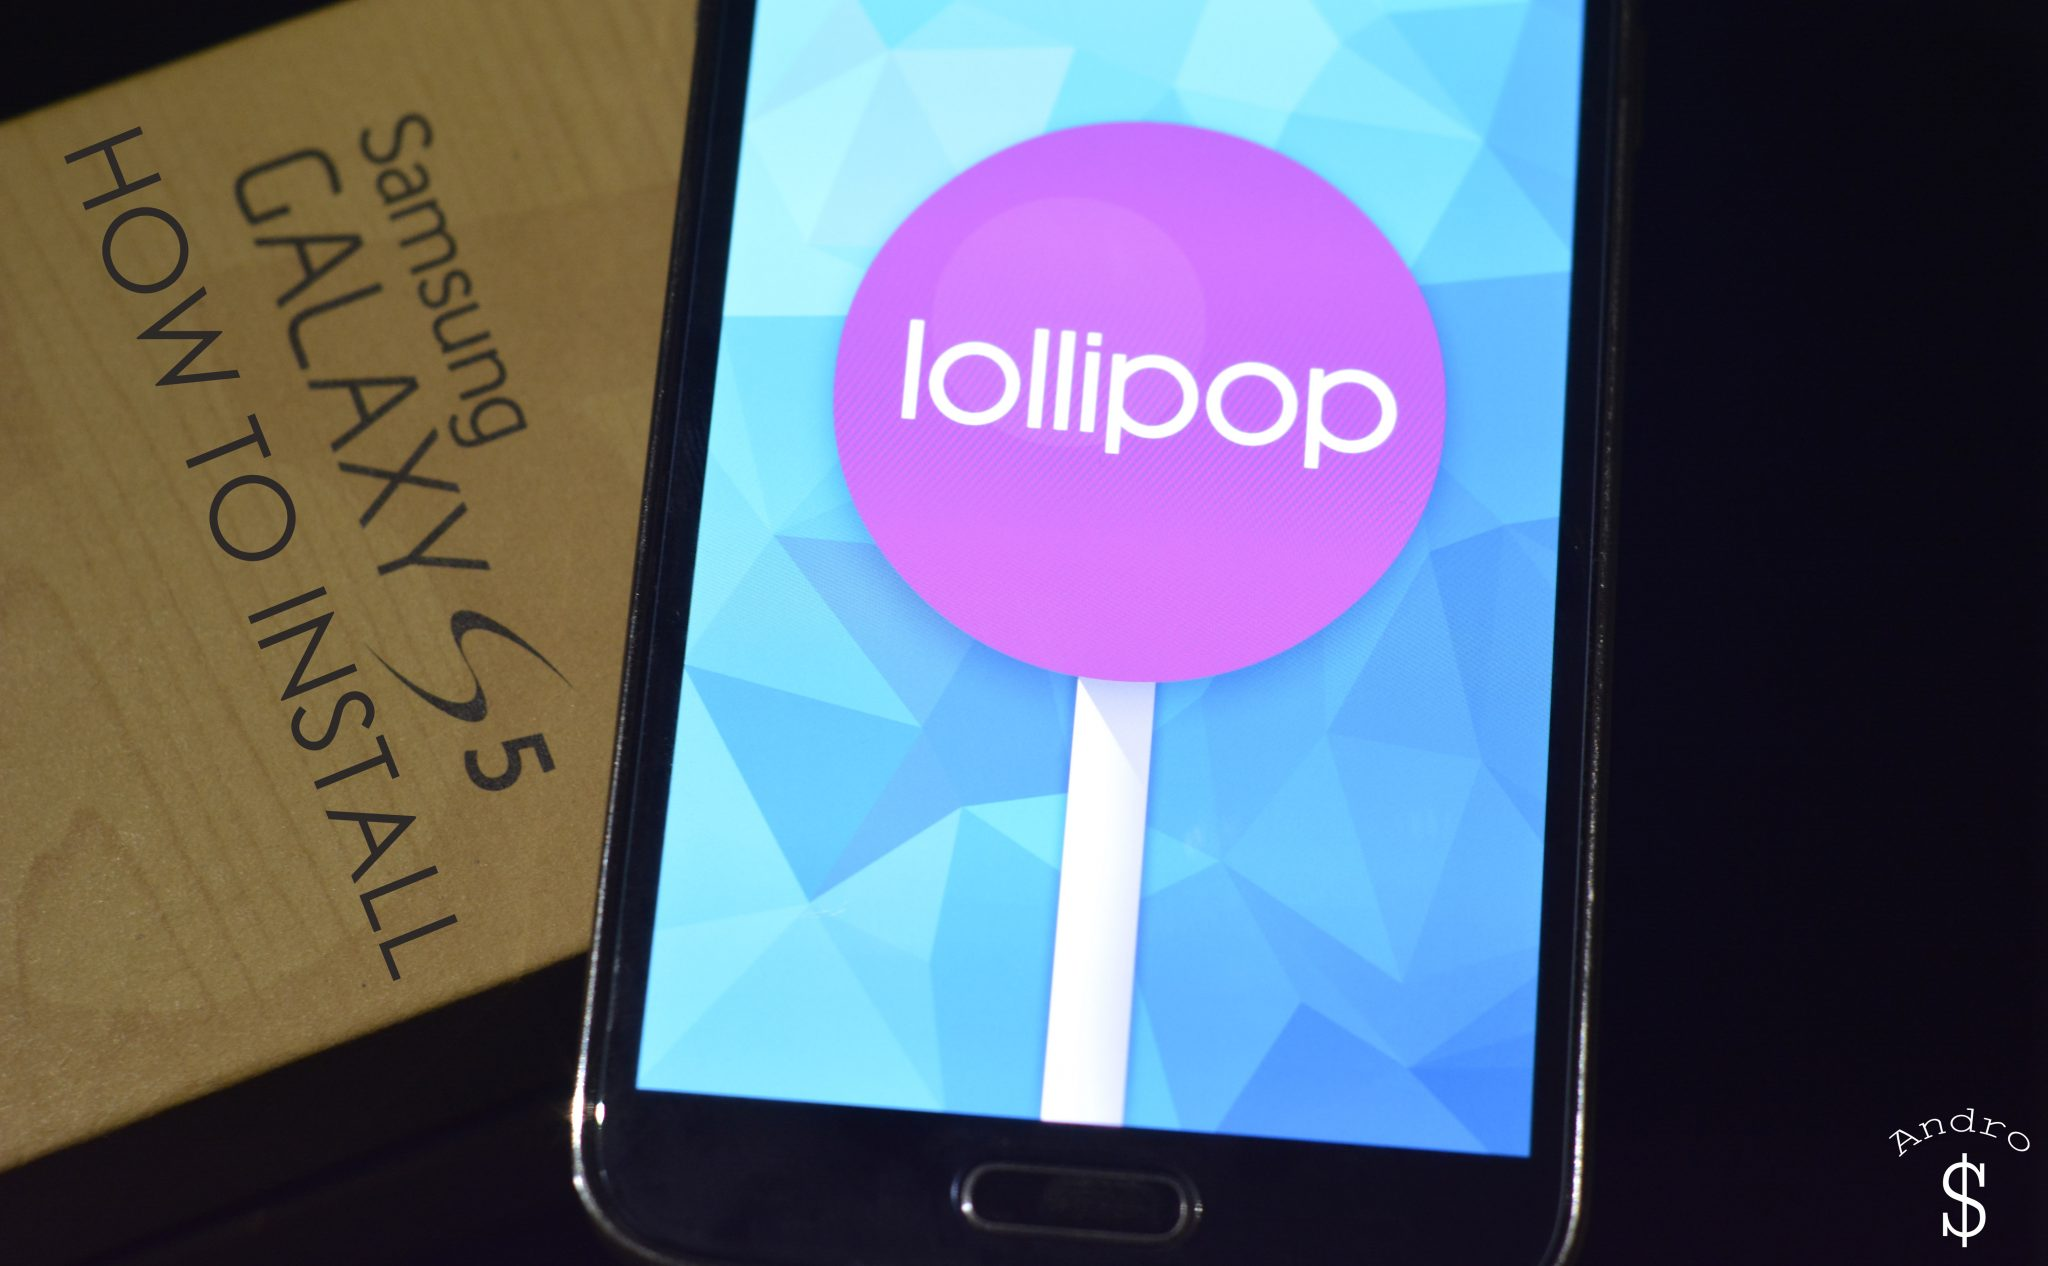 How To Install Android Lollipop Galaxy S5 – Andro Dollar